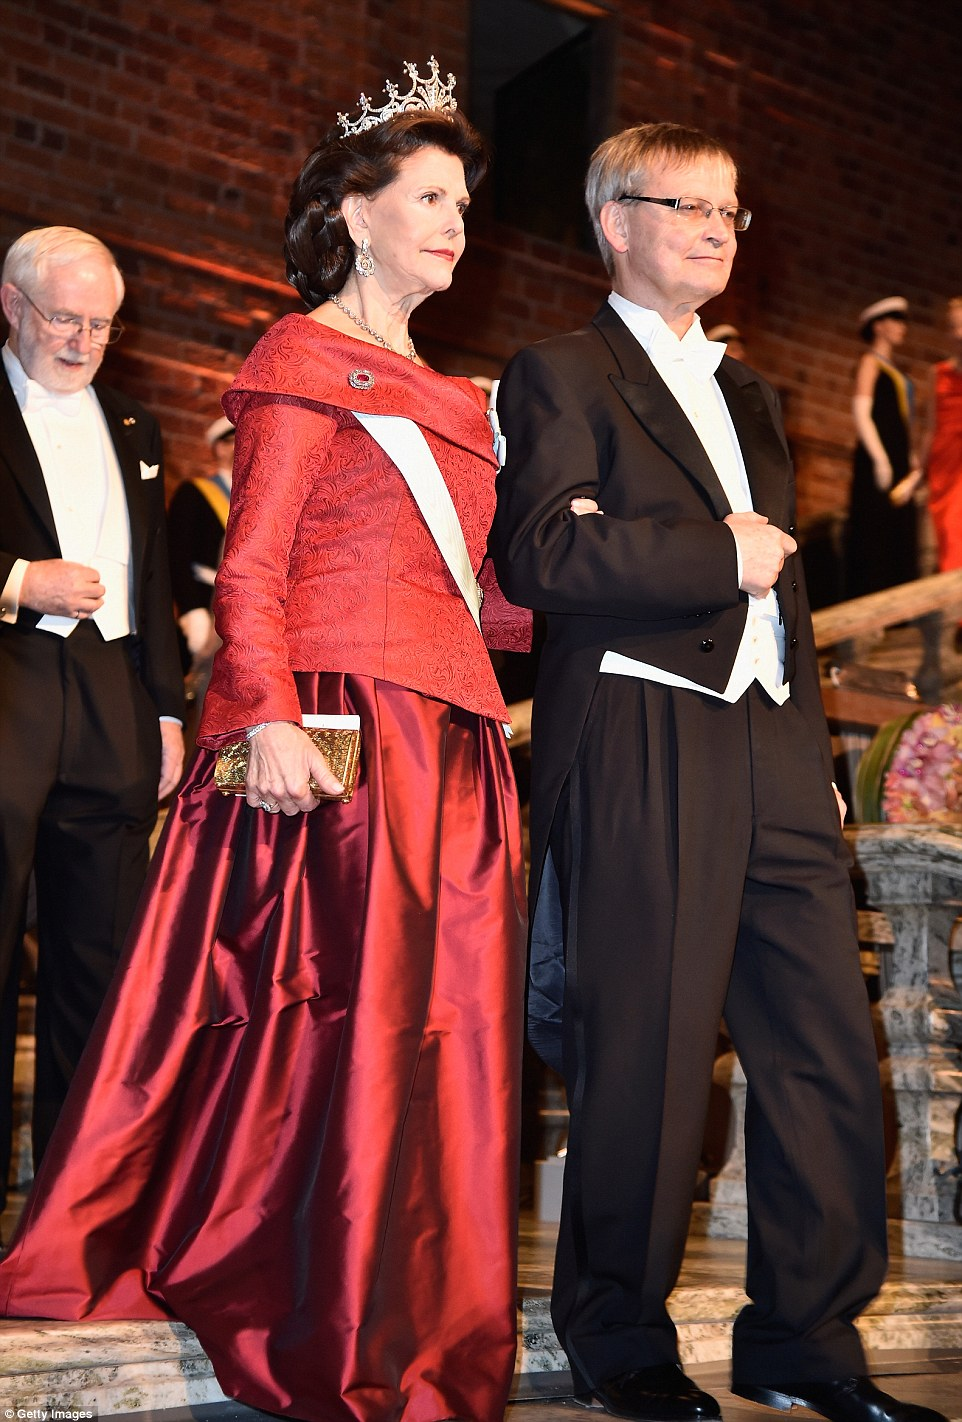 Queen Silvia was resplendent in red and her tiara encrusted with 500 diamonds; she was escorted by Professor Carl-Henrik Heldin, a Swedish molecular biologist and vice president of the European Research Council